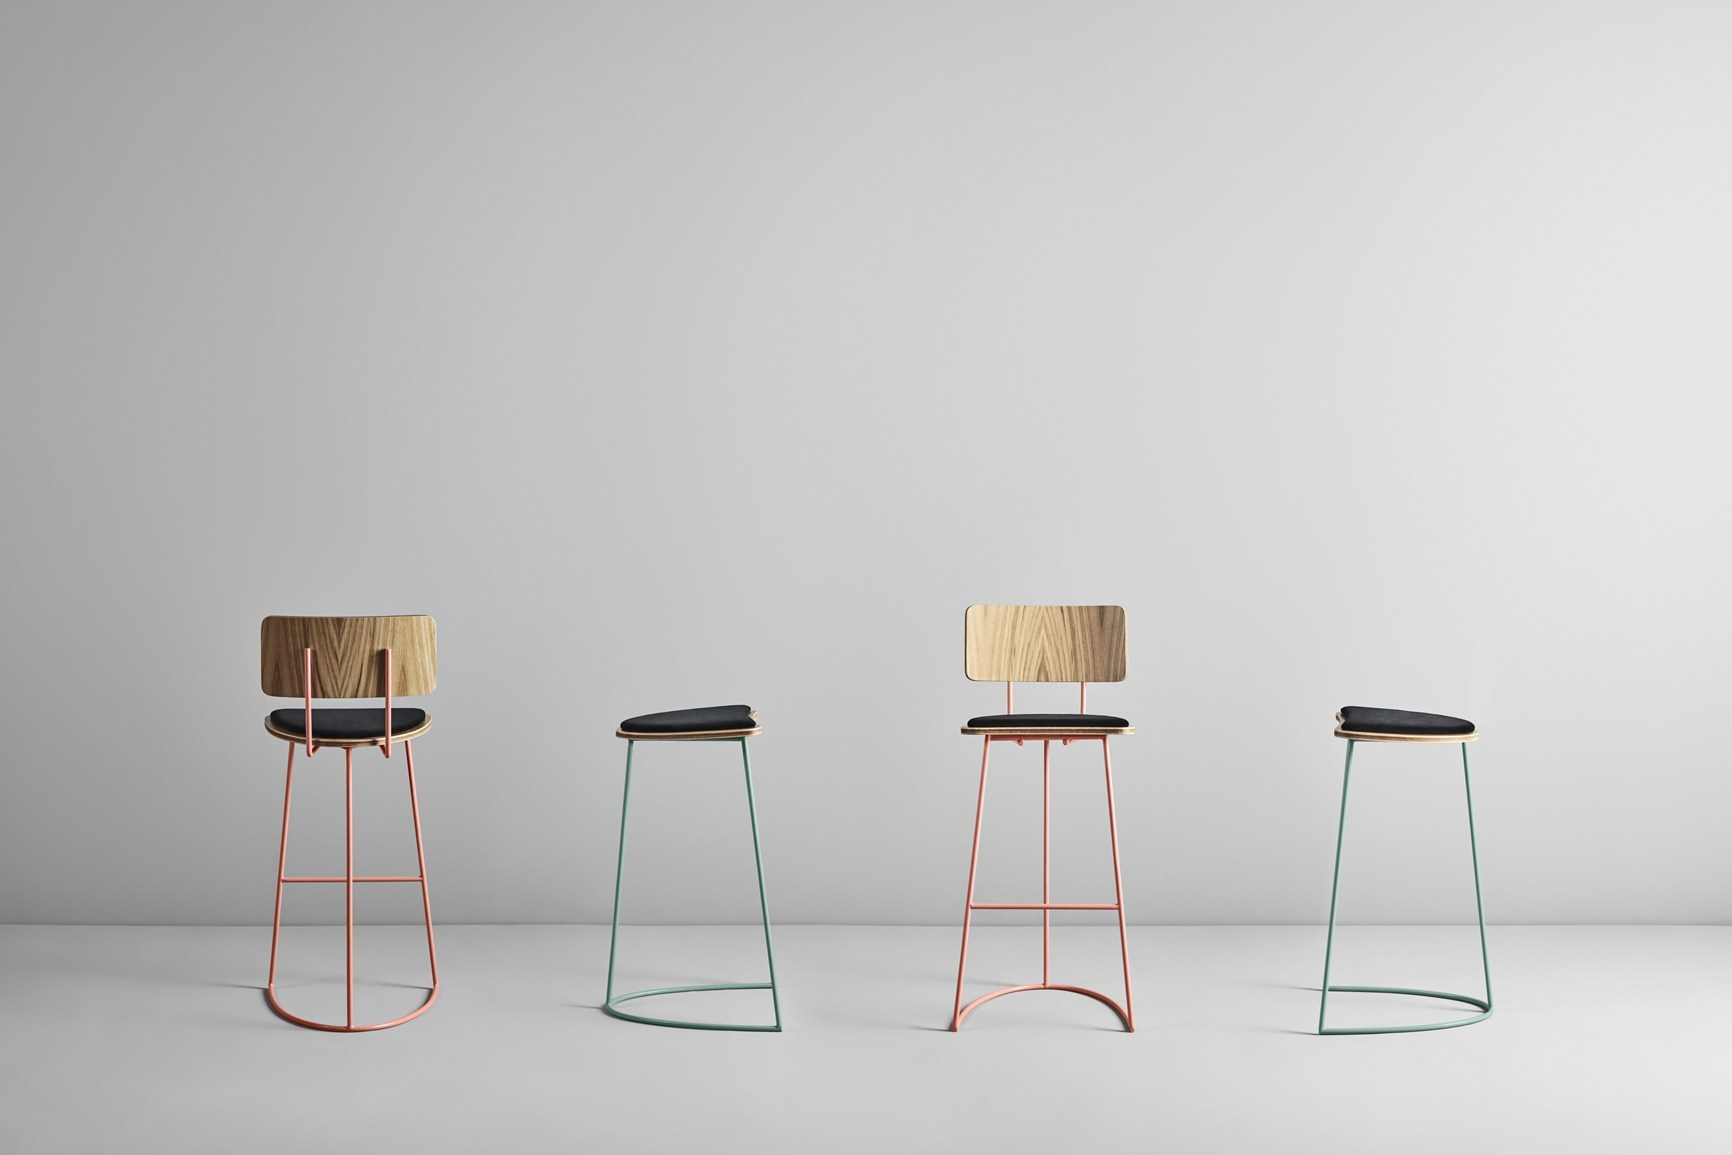 Boomerang Barstool by Cardeoli for Missana